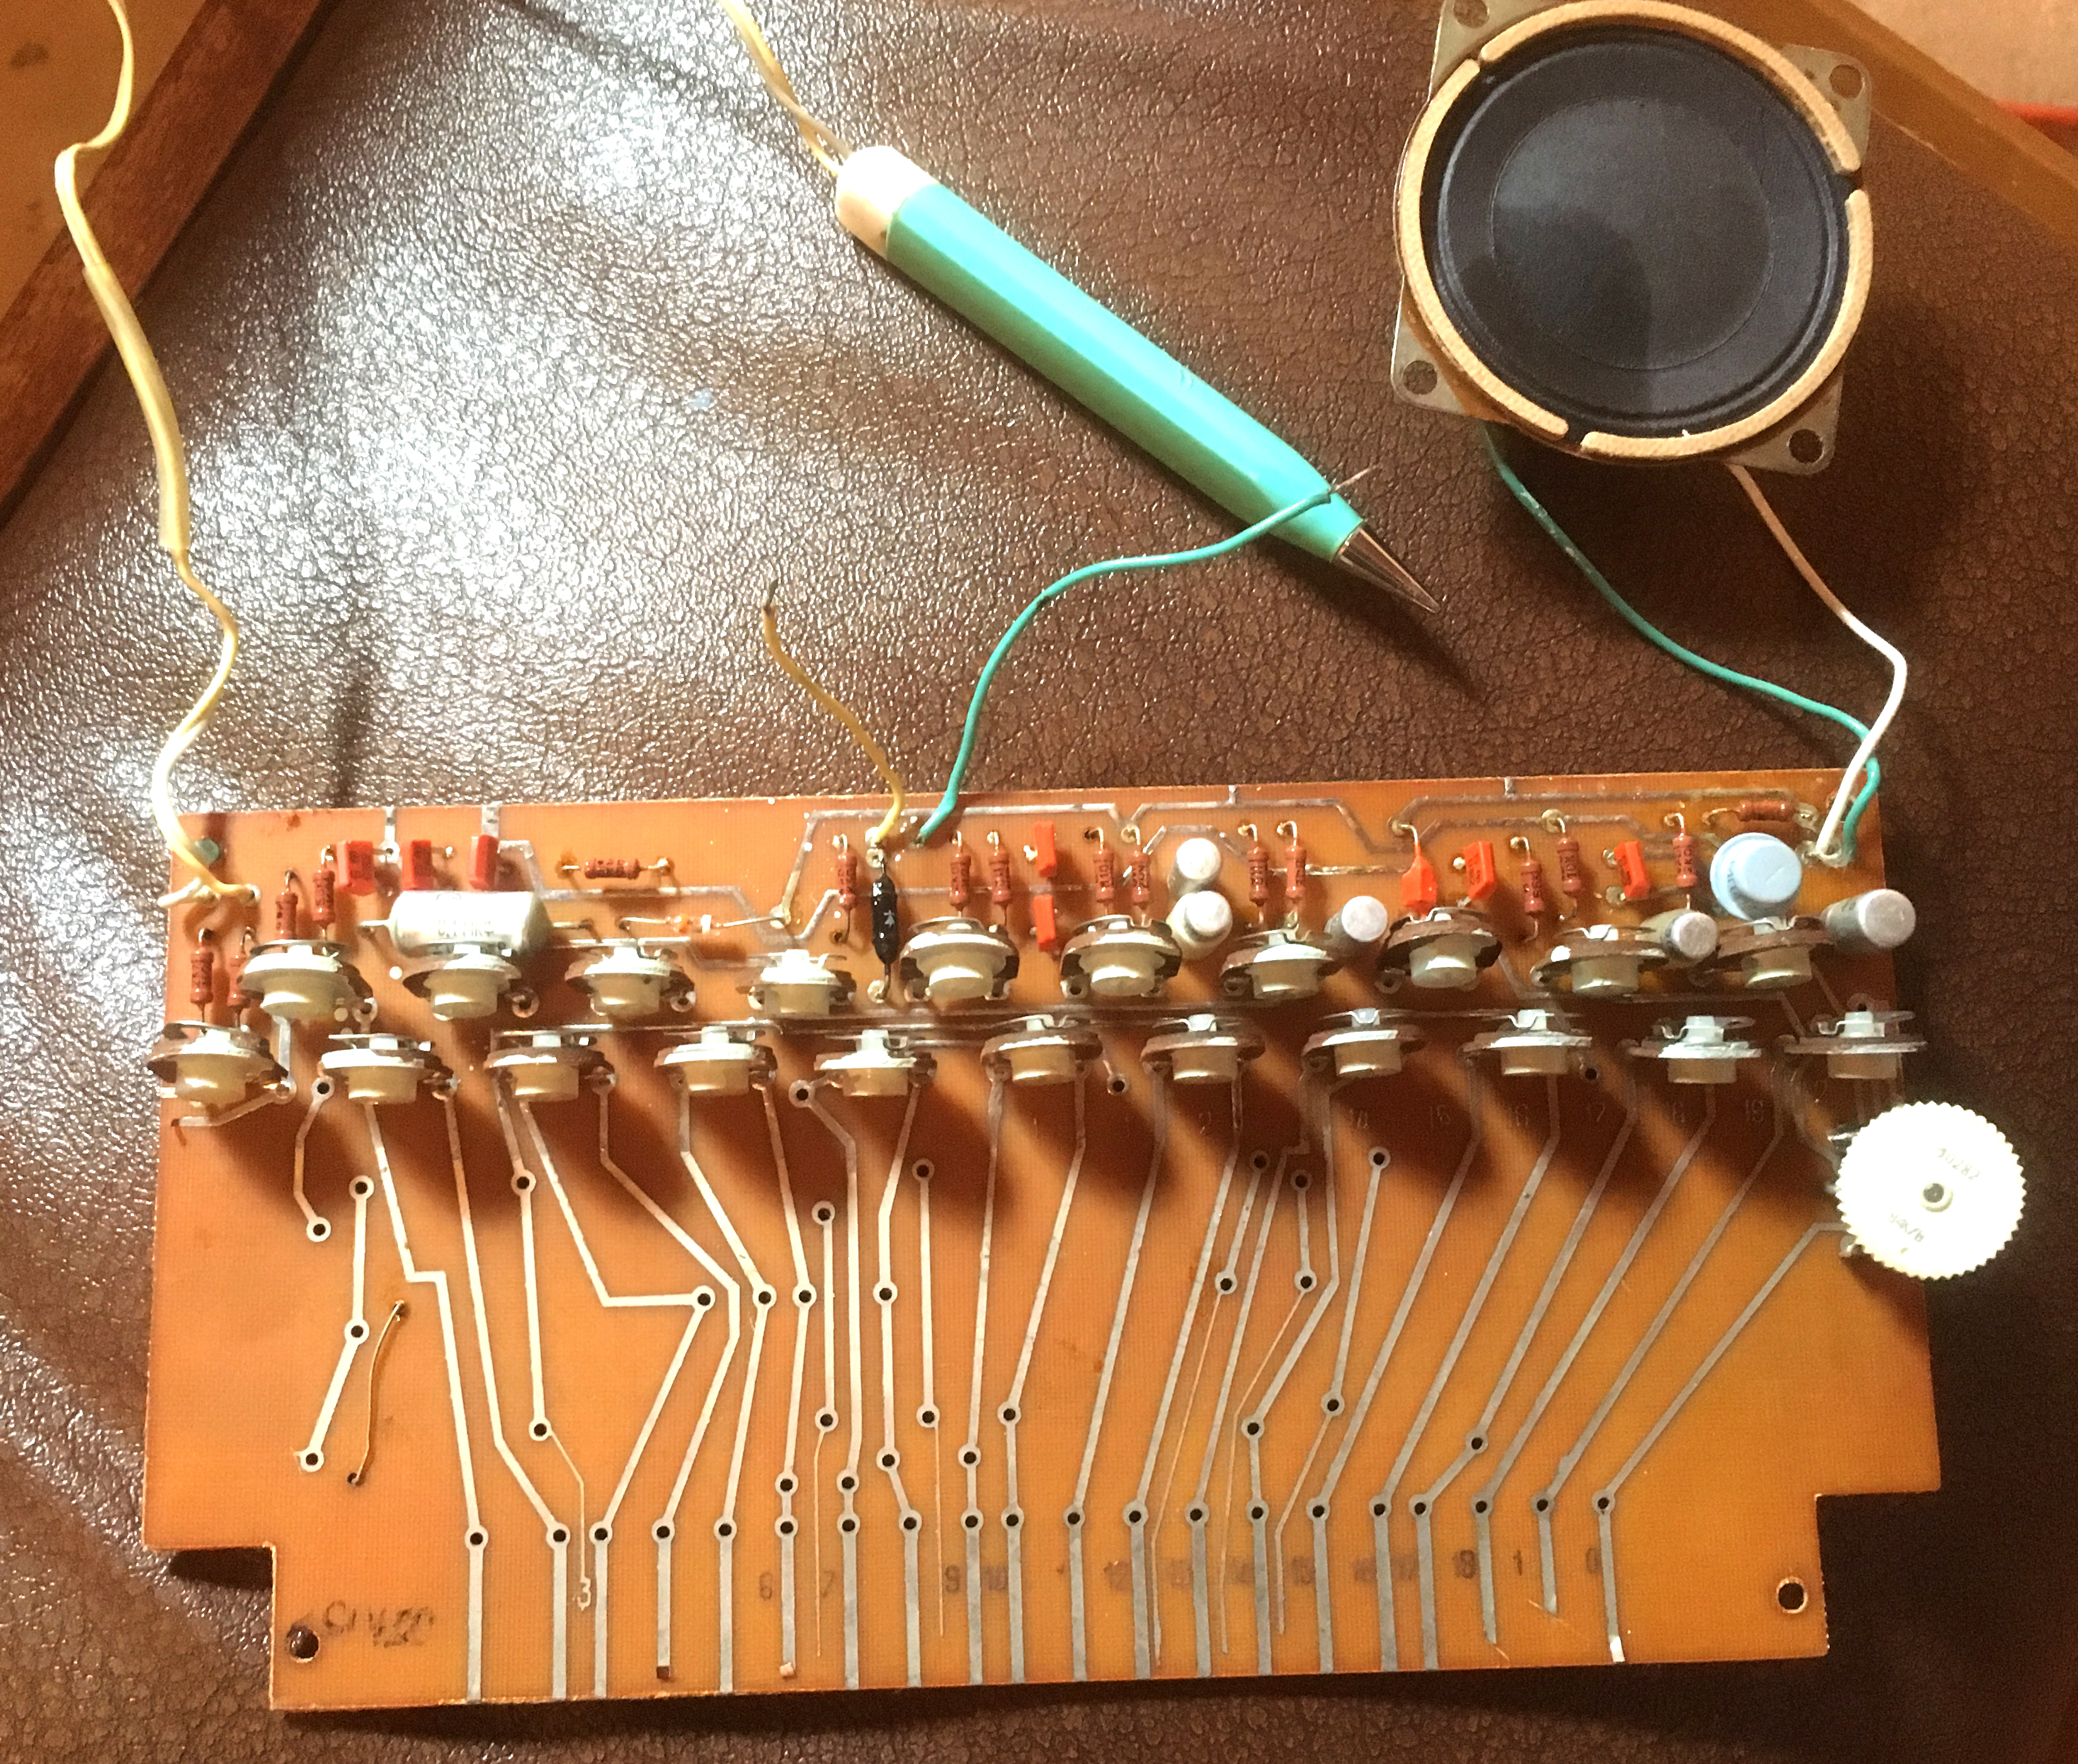 Stylophones Music Electronics Gate Tone Generator By Ic 4011 Electronic Projects Circuits The Components On Circuit Board Werent Quite Same As Their Western Equivalents But Recognisable Nonetheless